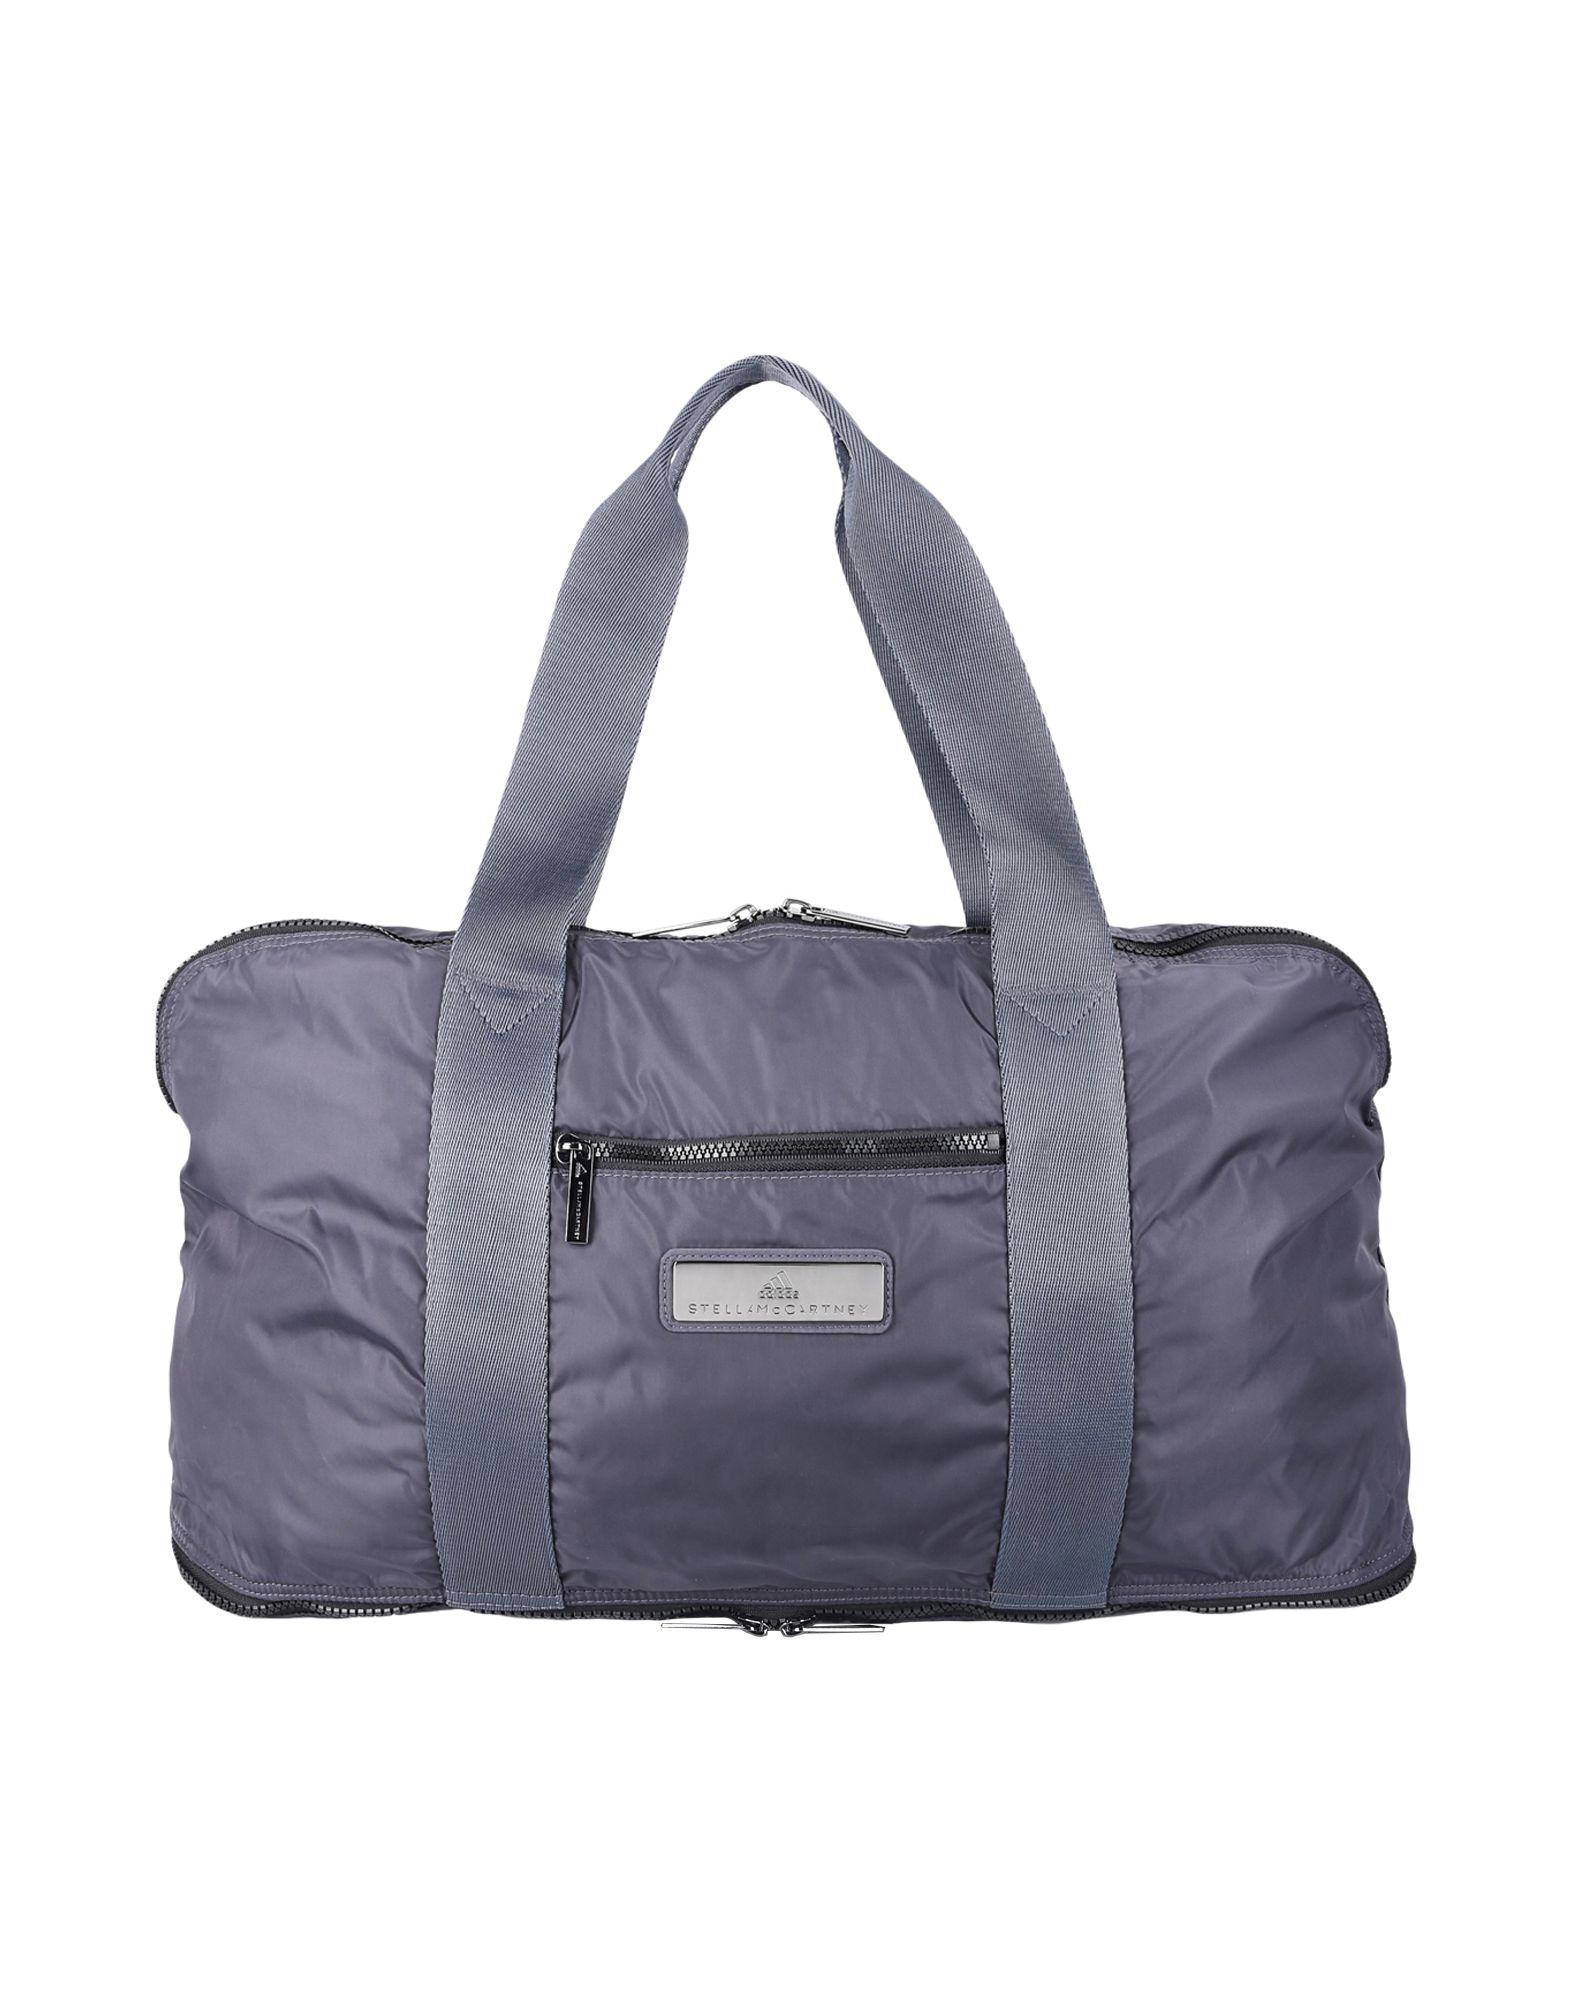 ADIDAS by STELLA McCARTNEY Travel & duffel bags